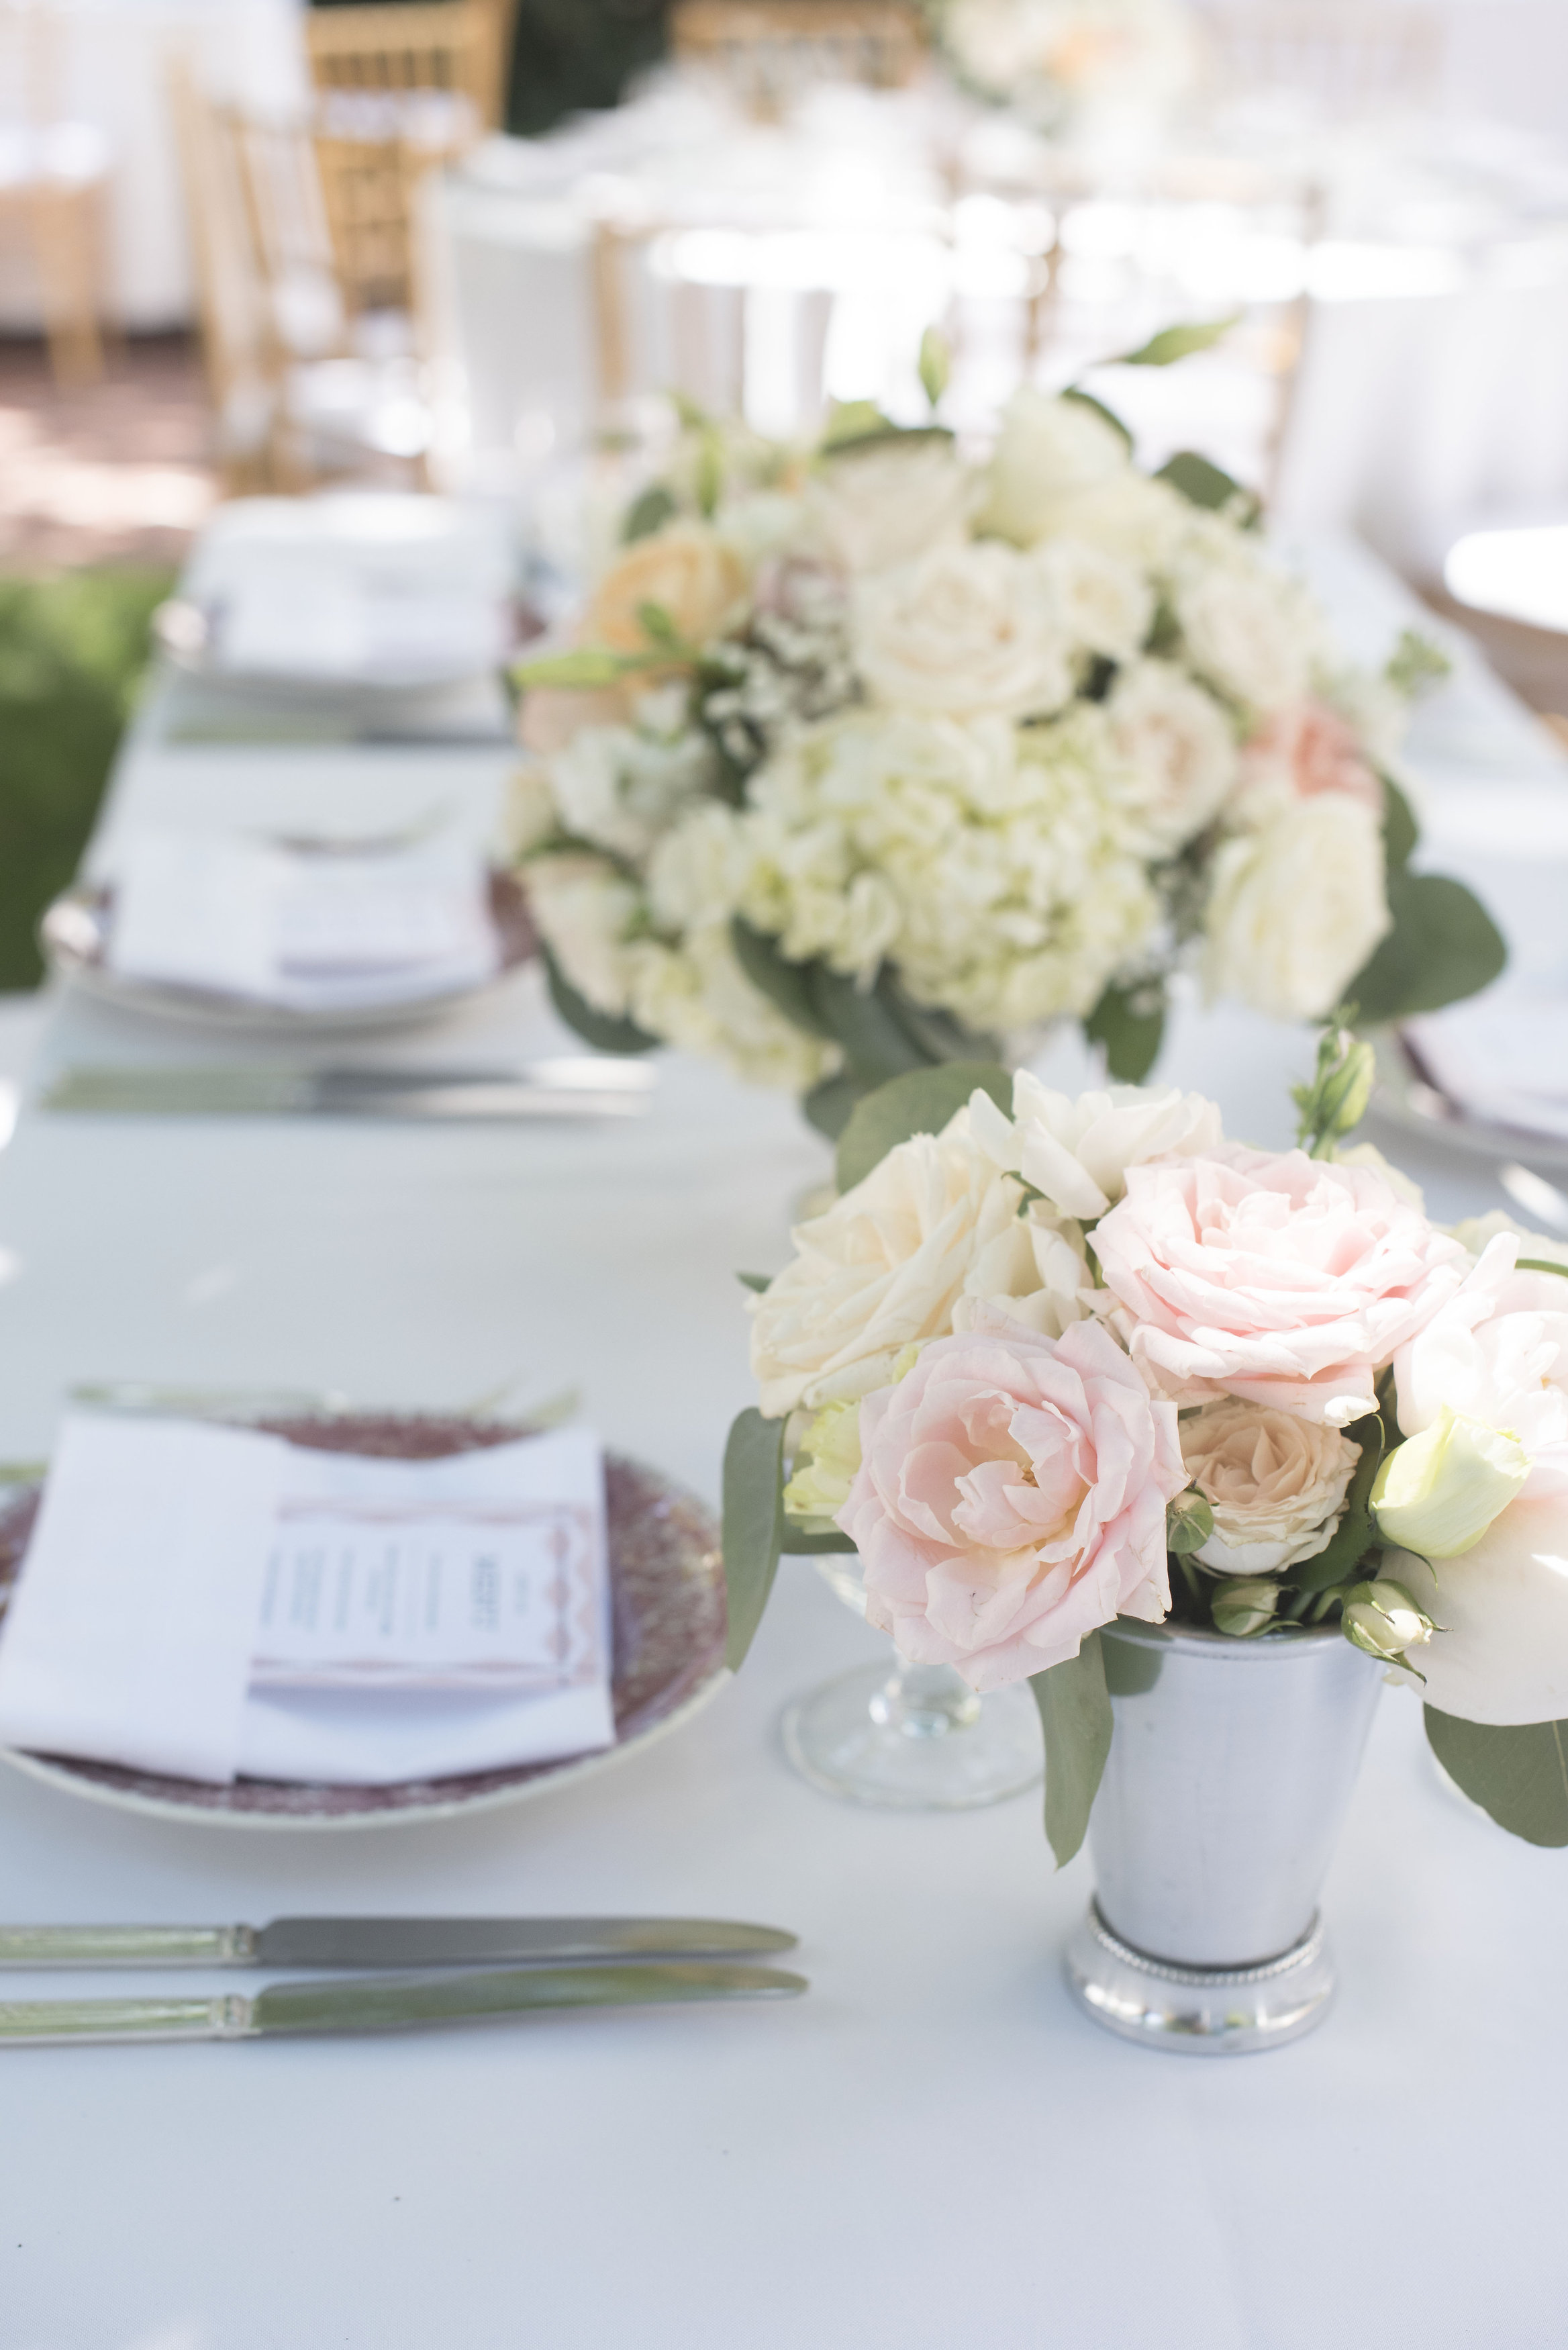 Bridalbliss.com | Portland Wedding | Oregon Event Planning and Design | Ellie Asher Photography | Christopher David Floral